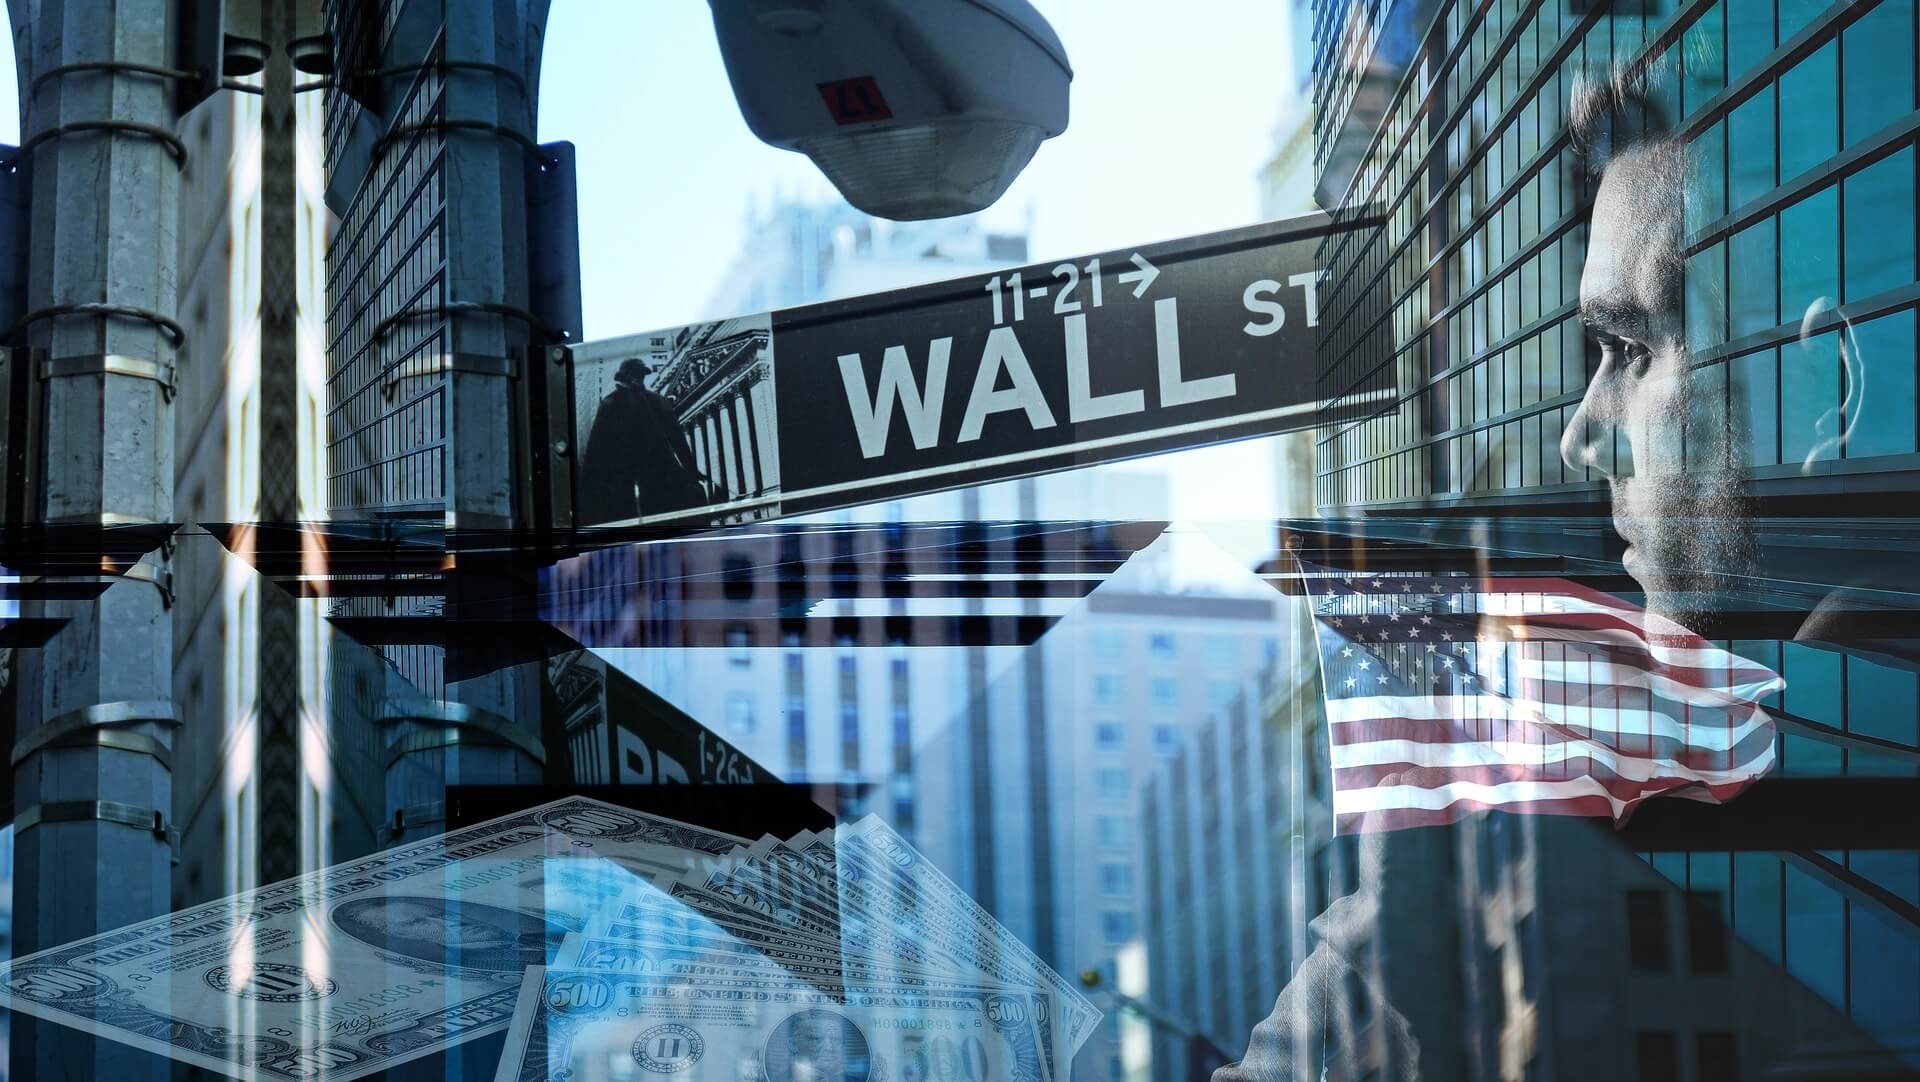 Wall Street affected by the coronavirus crisis